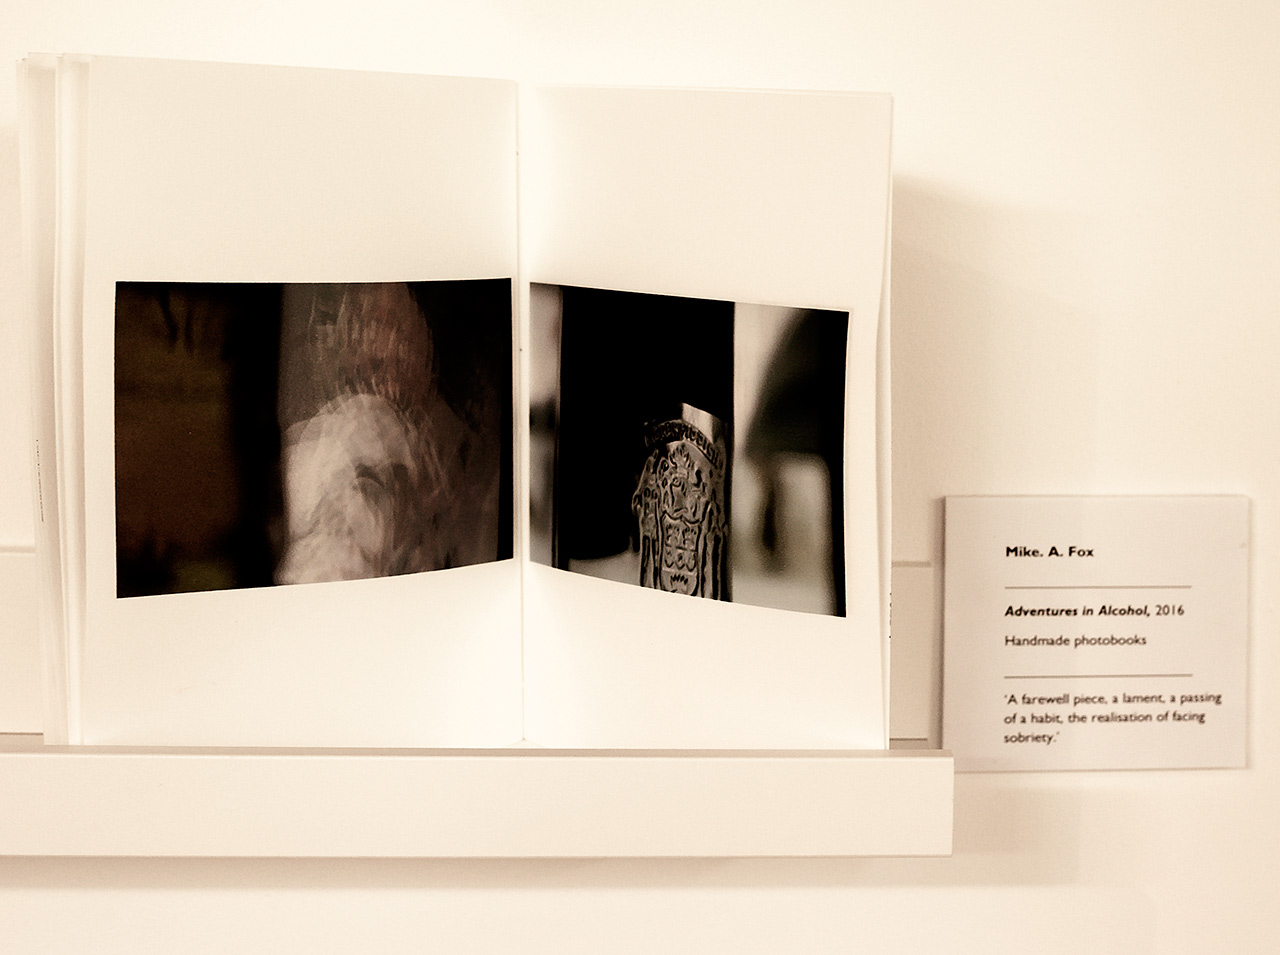 venture-photobooks-exhibition-06